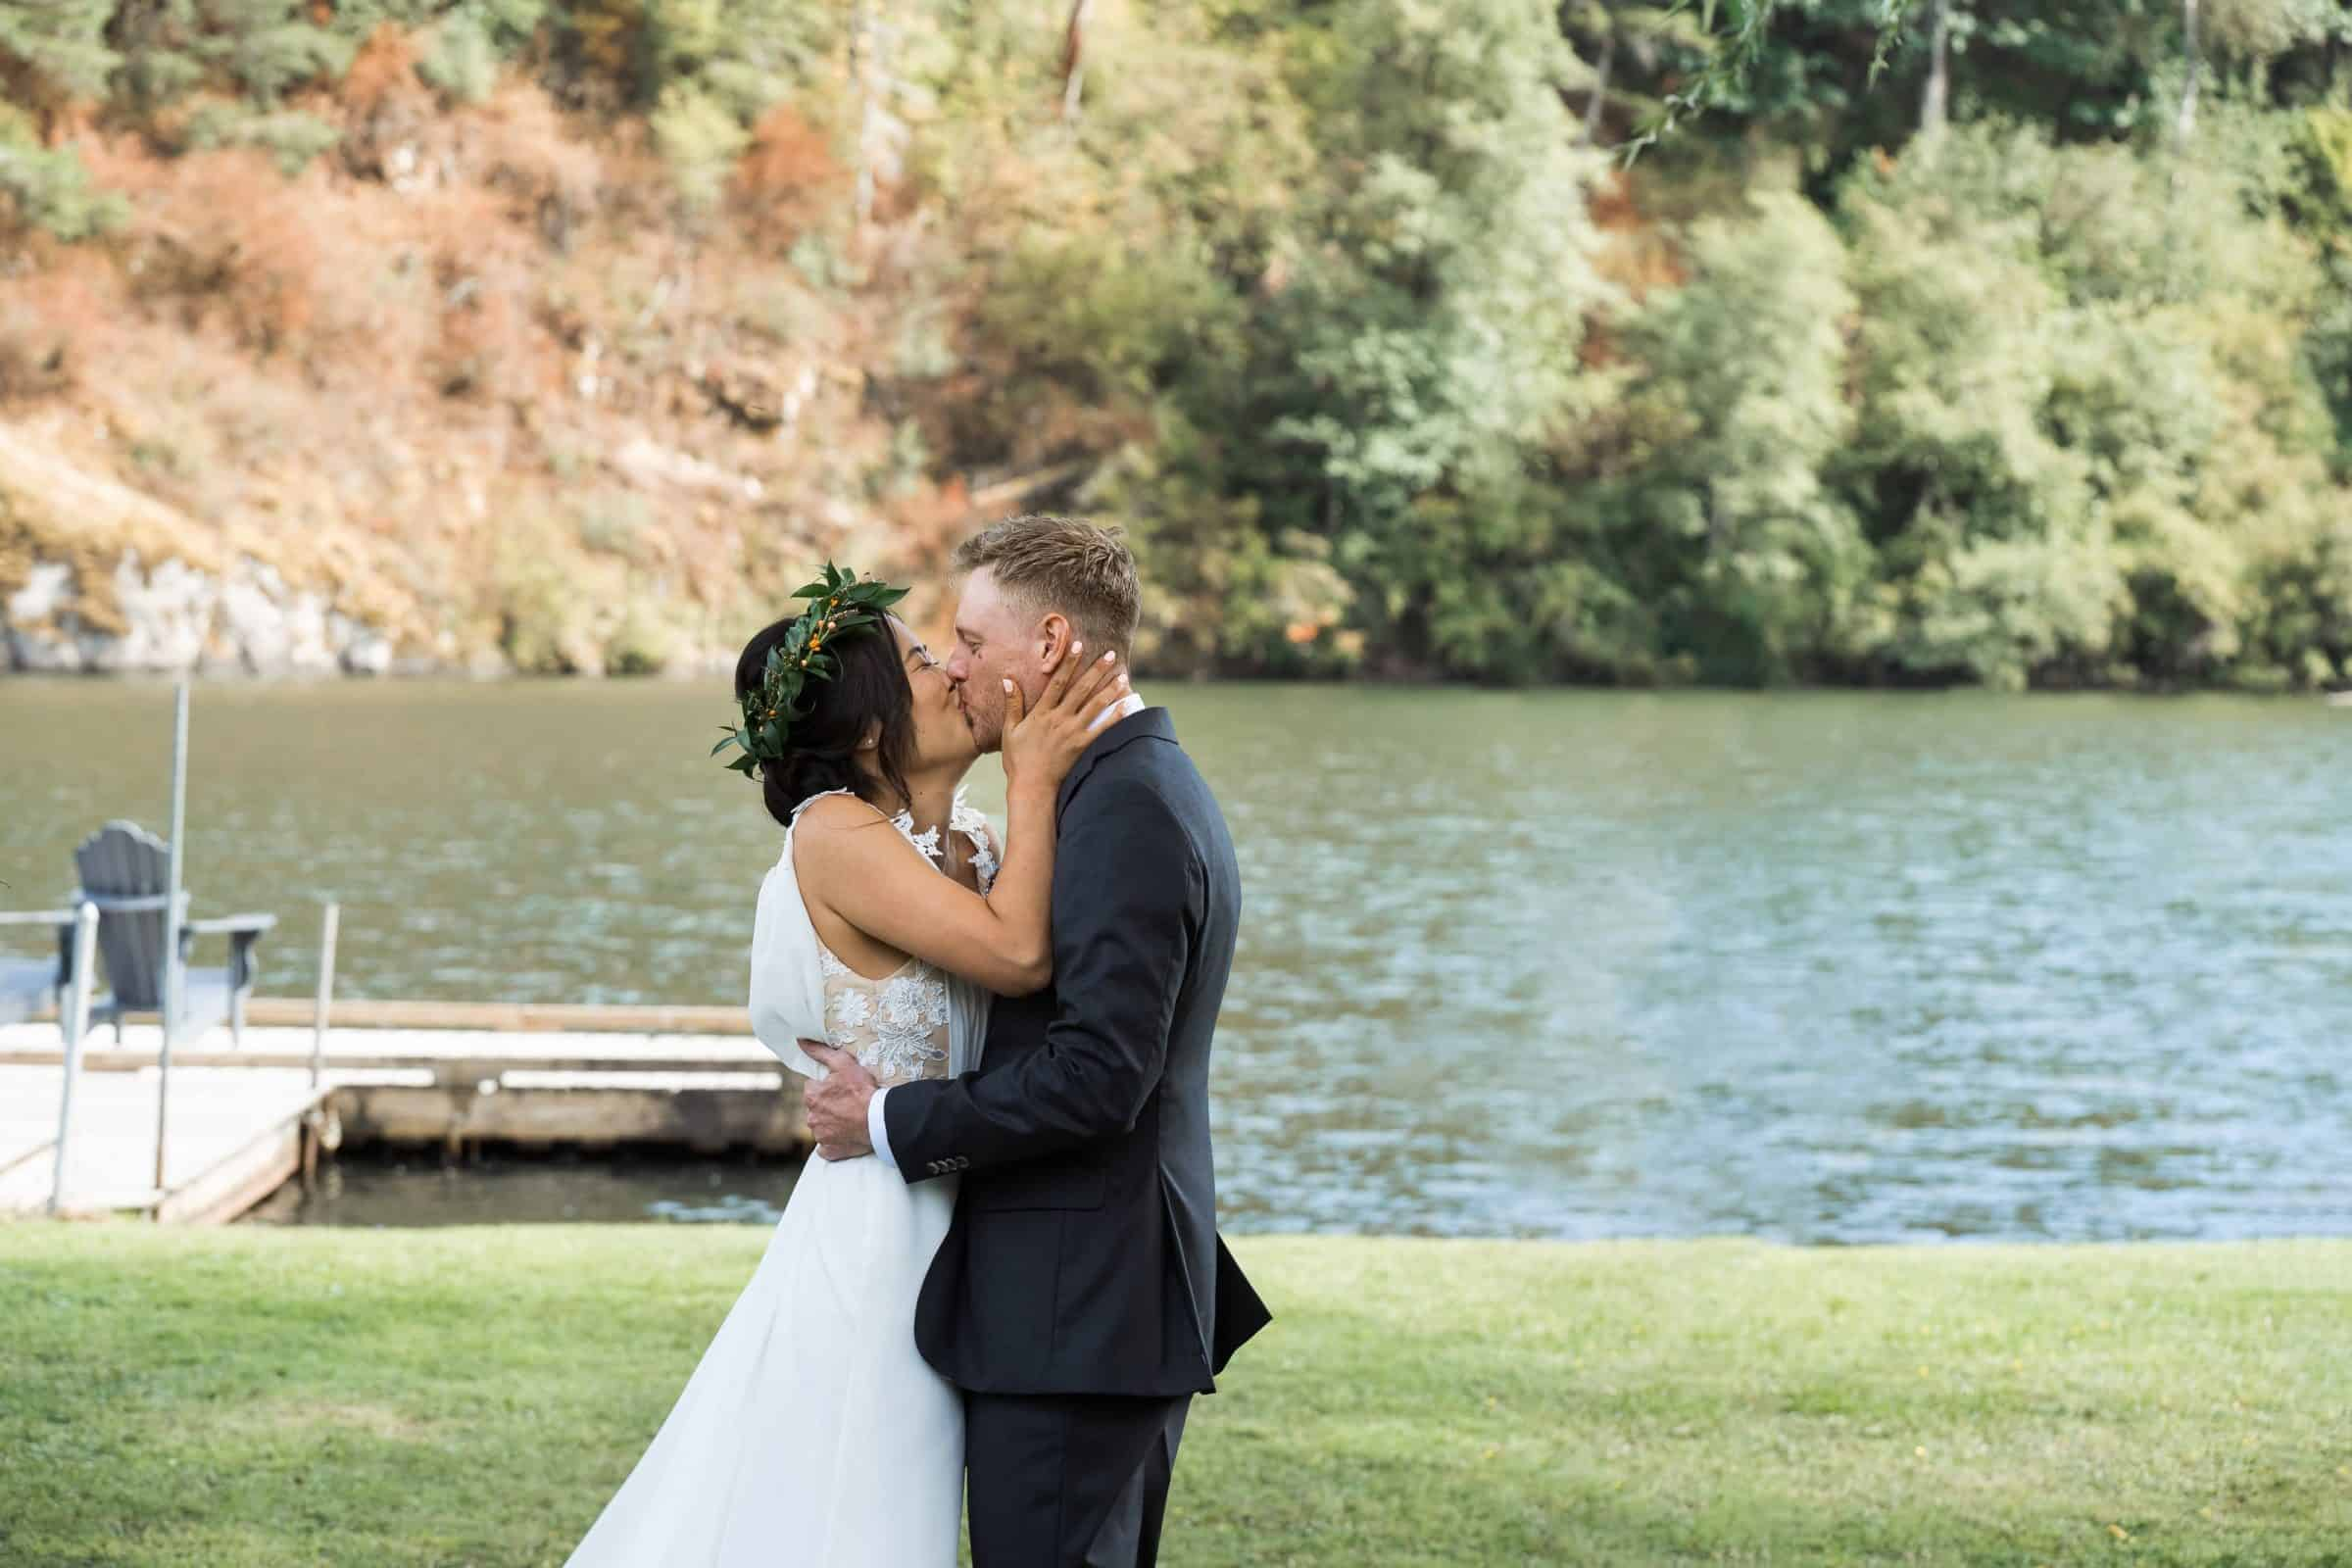 bride and groom first kiss with lake in the background